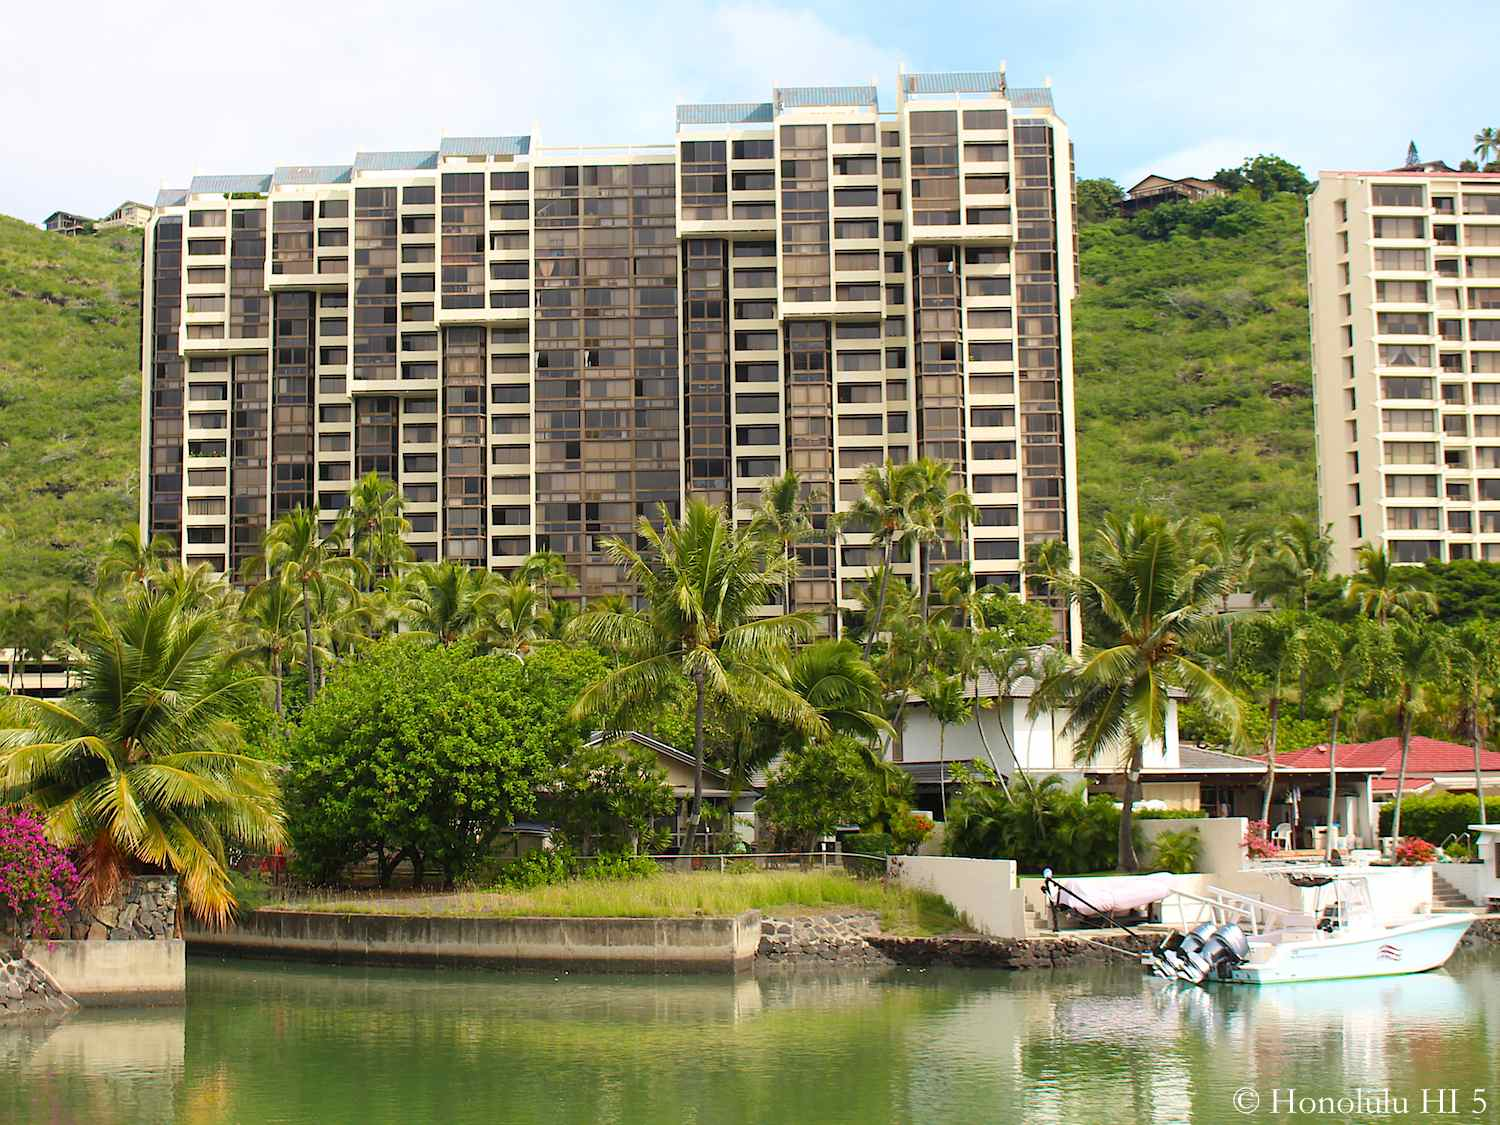 Mauna Luan Condo Hawaii Kai Seen with Marina in the Front and Green Hill Behind